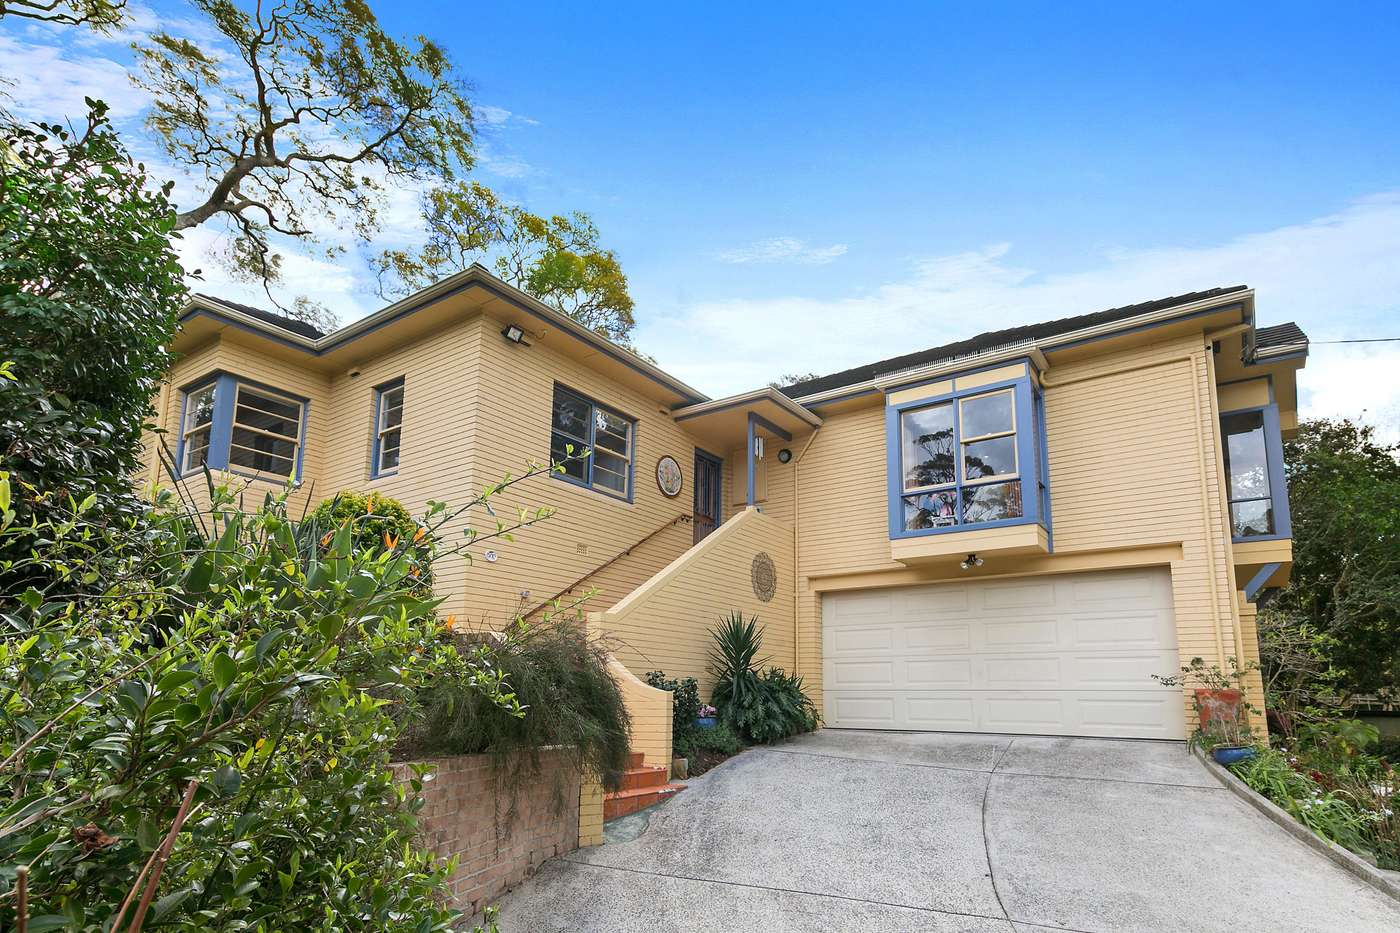 Main view of Homely house listing, 17 Pockley Avenue, Roseville, NSW 2069